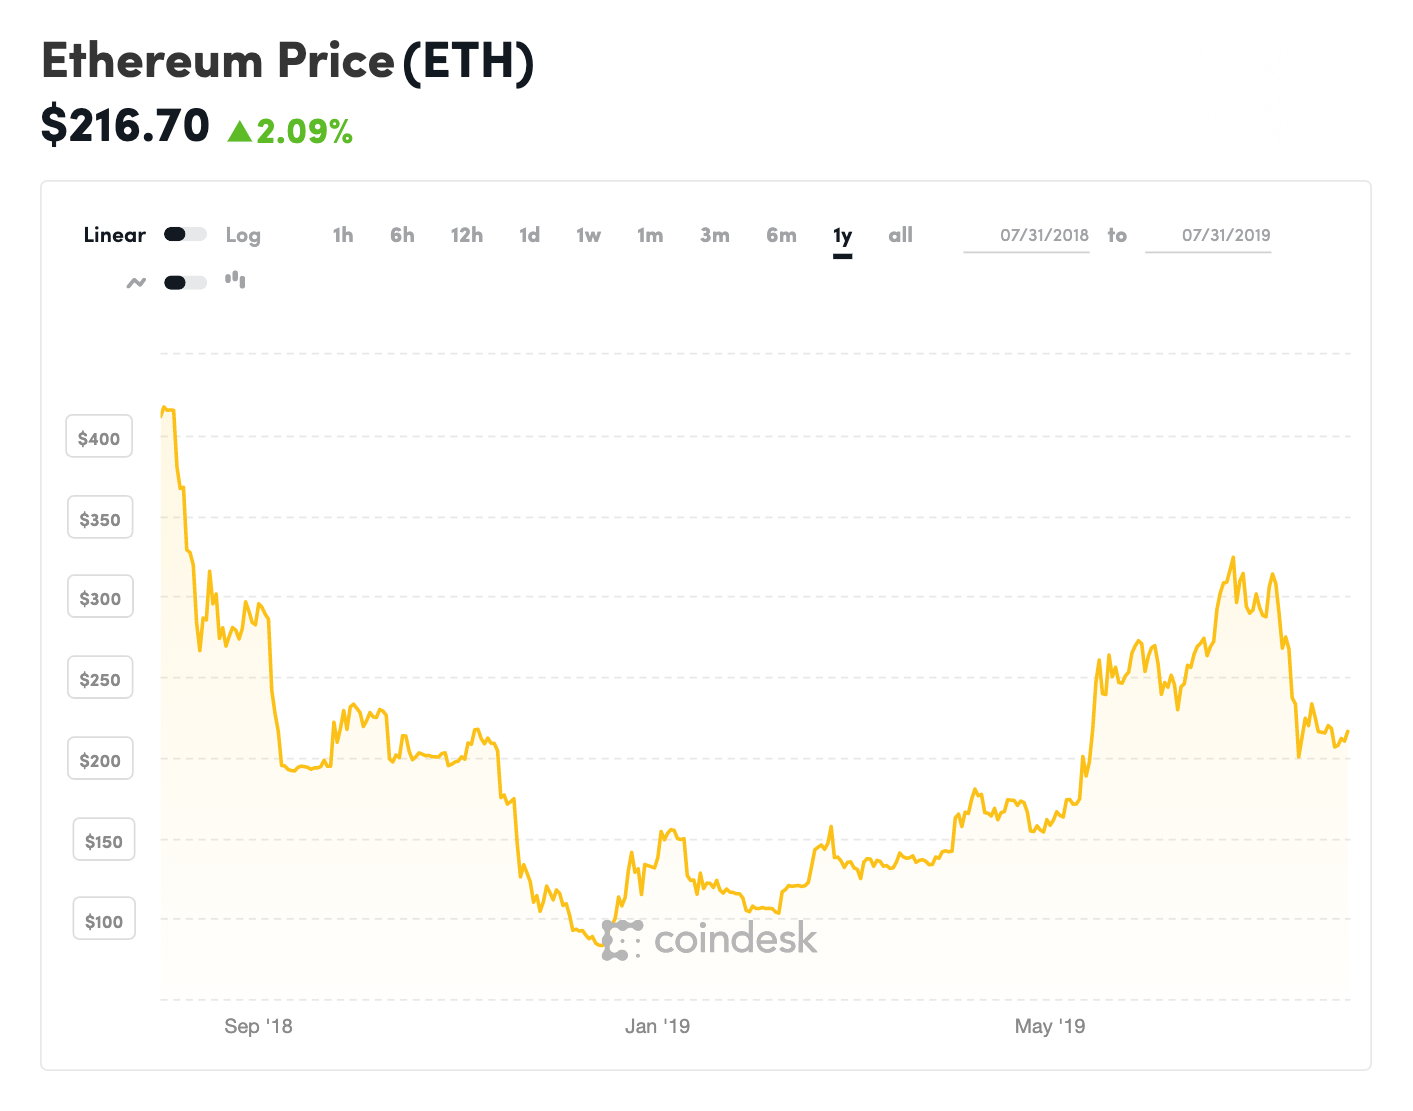 coindesk-ETH-chart-2019-07-31-2.png